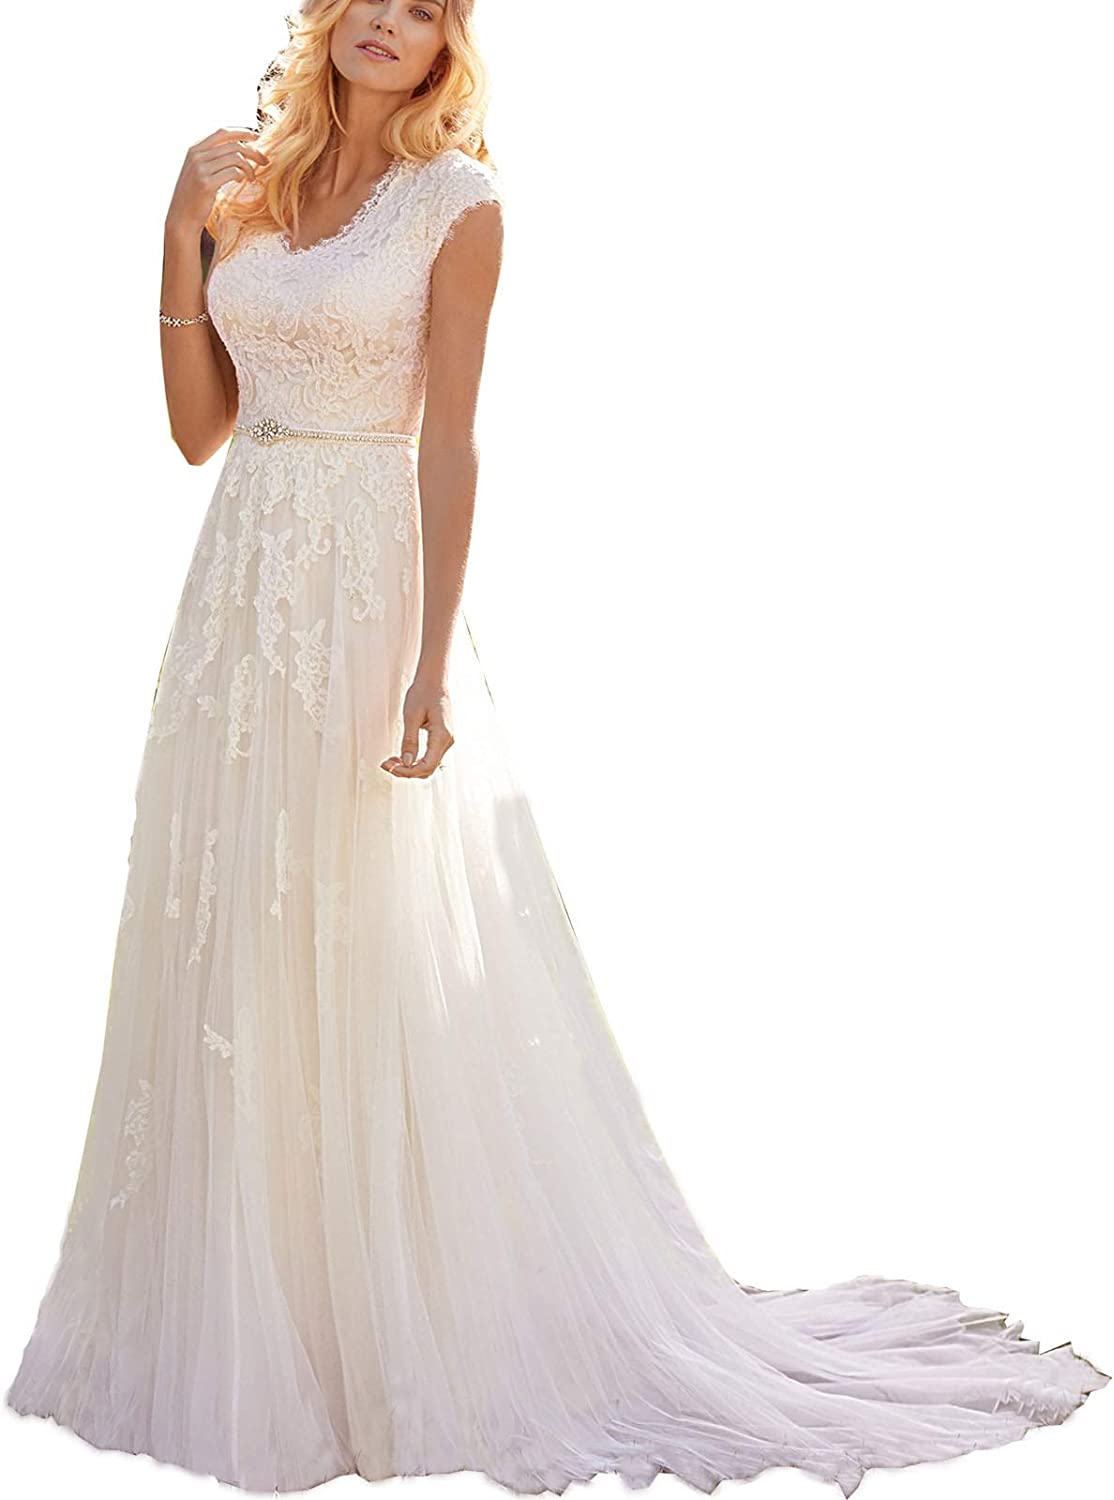 Women's V-Neck Wedding Dress Floral Cap Sleeves Lace Prom Dress for Bridal